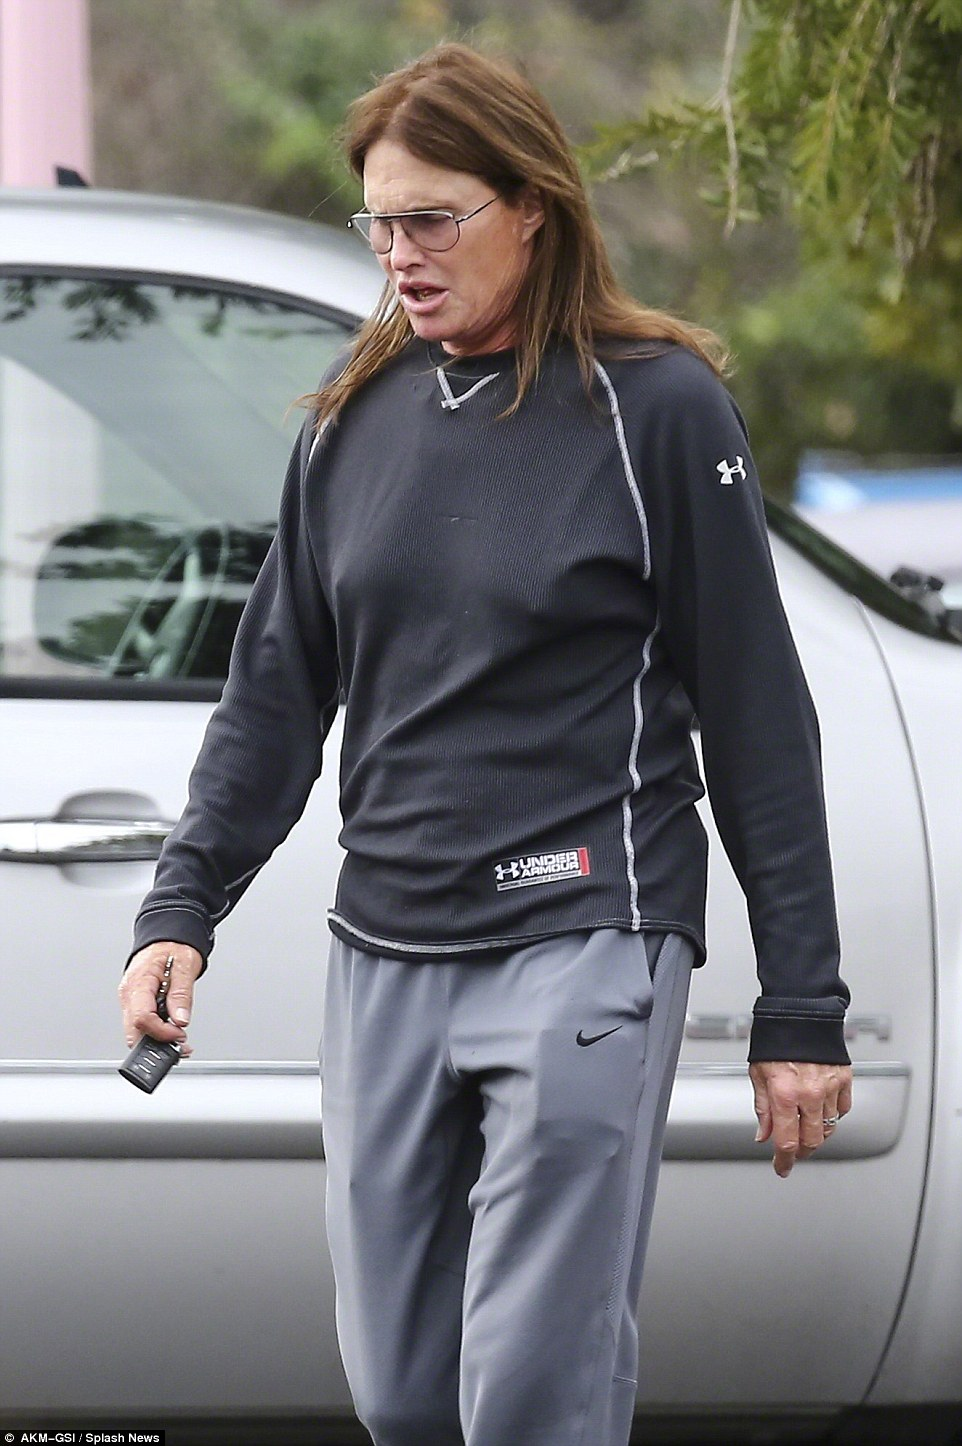 Changing body: In March, Bruce sparked further speculation about his plans to transition, when he was pictured with what appeared to be breasts, just a few months after it was reported that he had undergone a breast augmentation